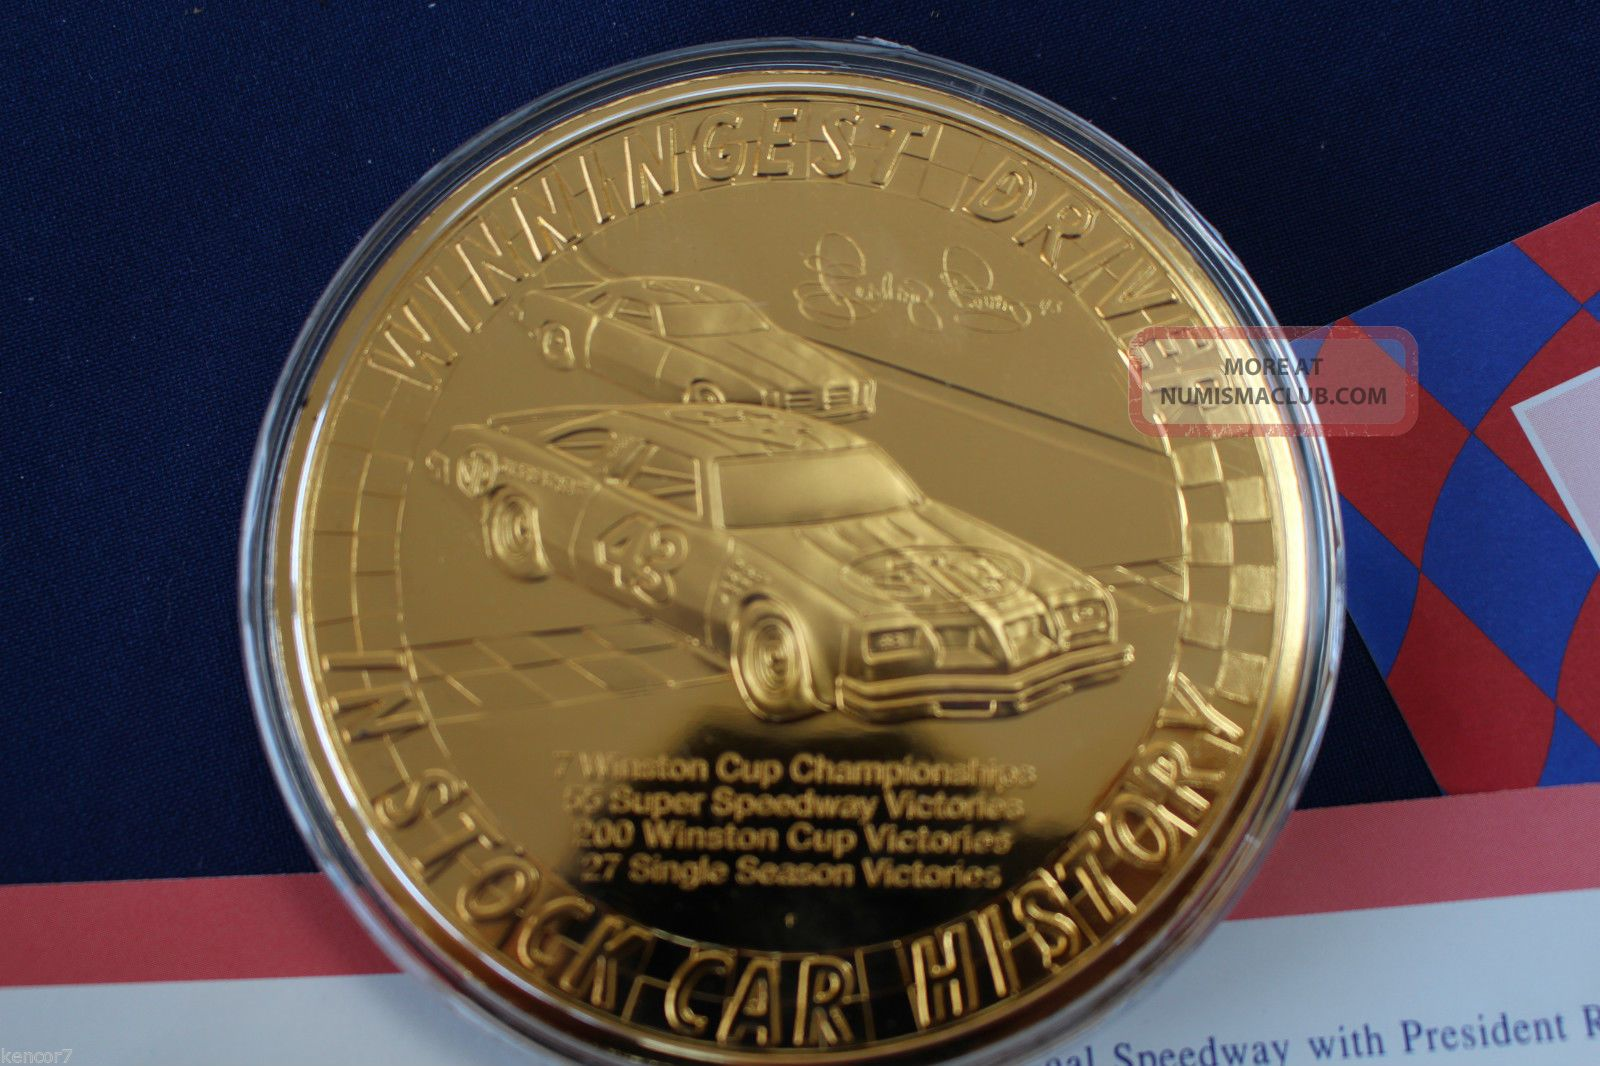 1998 Richard Petty 40th Anniversary Tribute Silver Medal